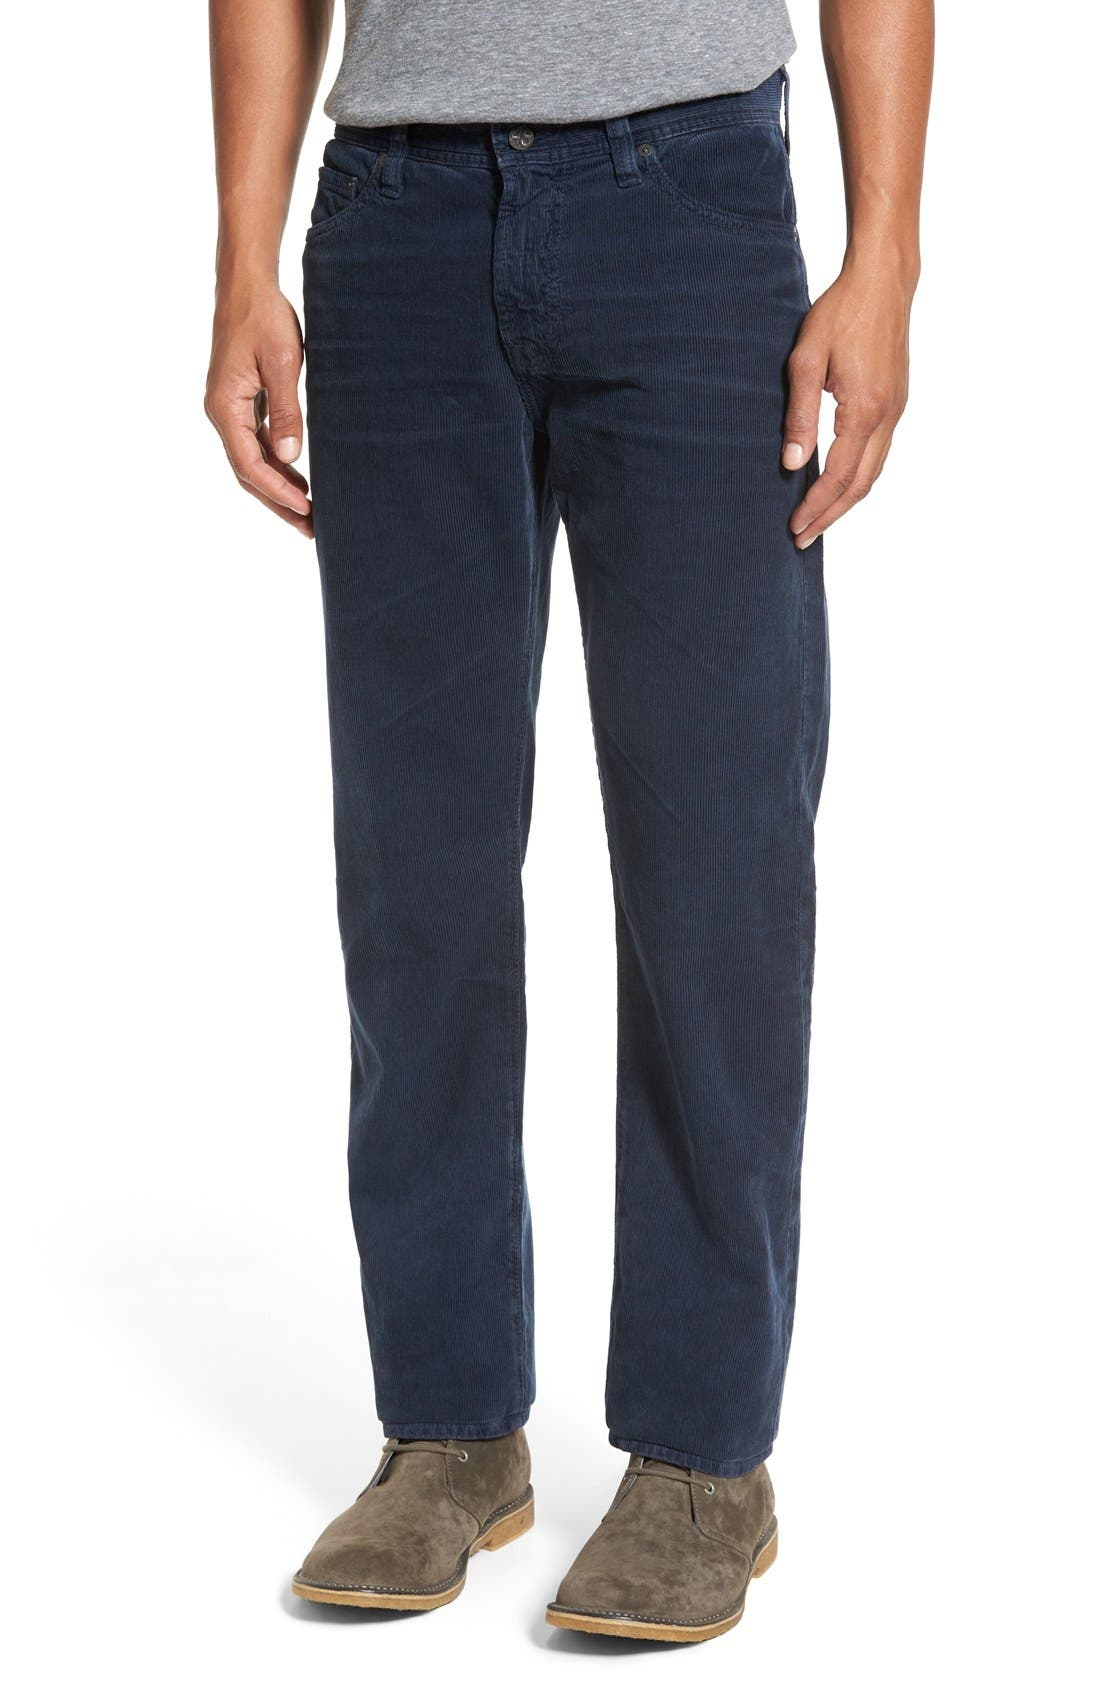 'Graduate' Tailored Straight Leg Corduroy Pants,                             Main thumbnail 15, color,